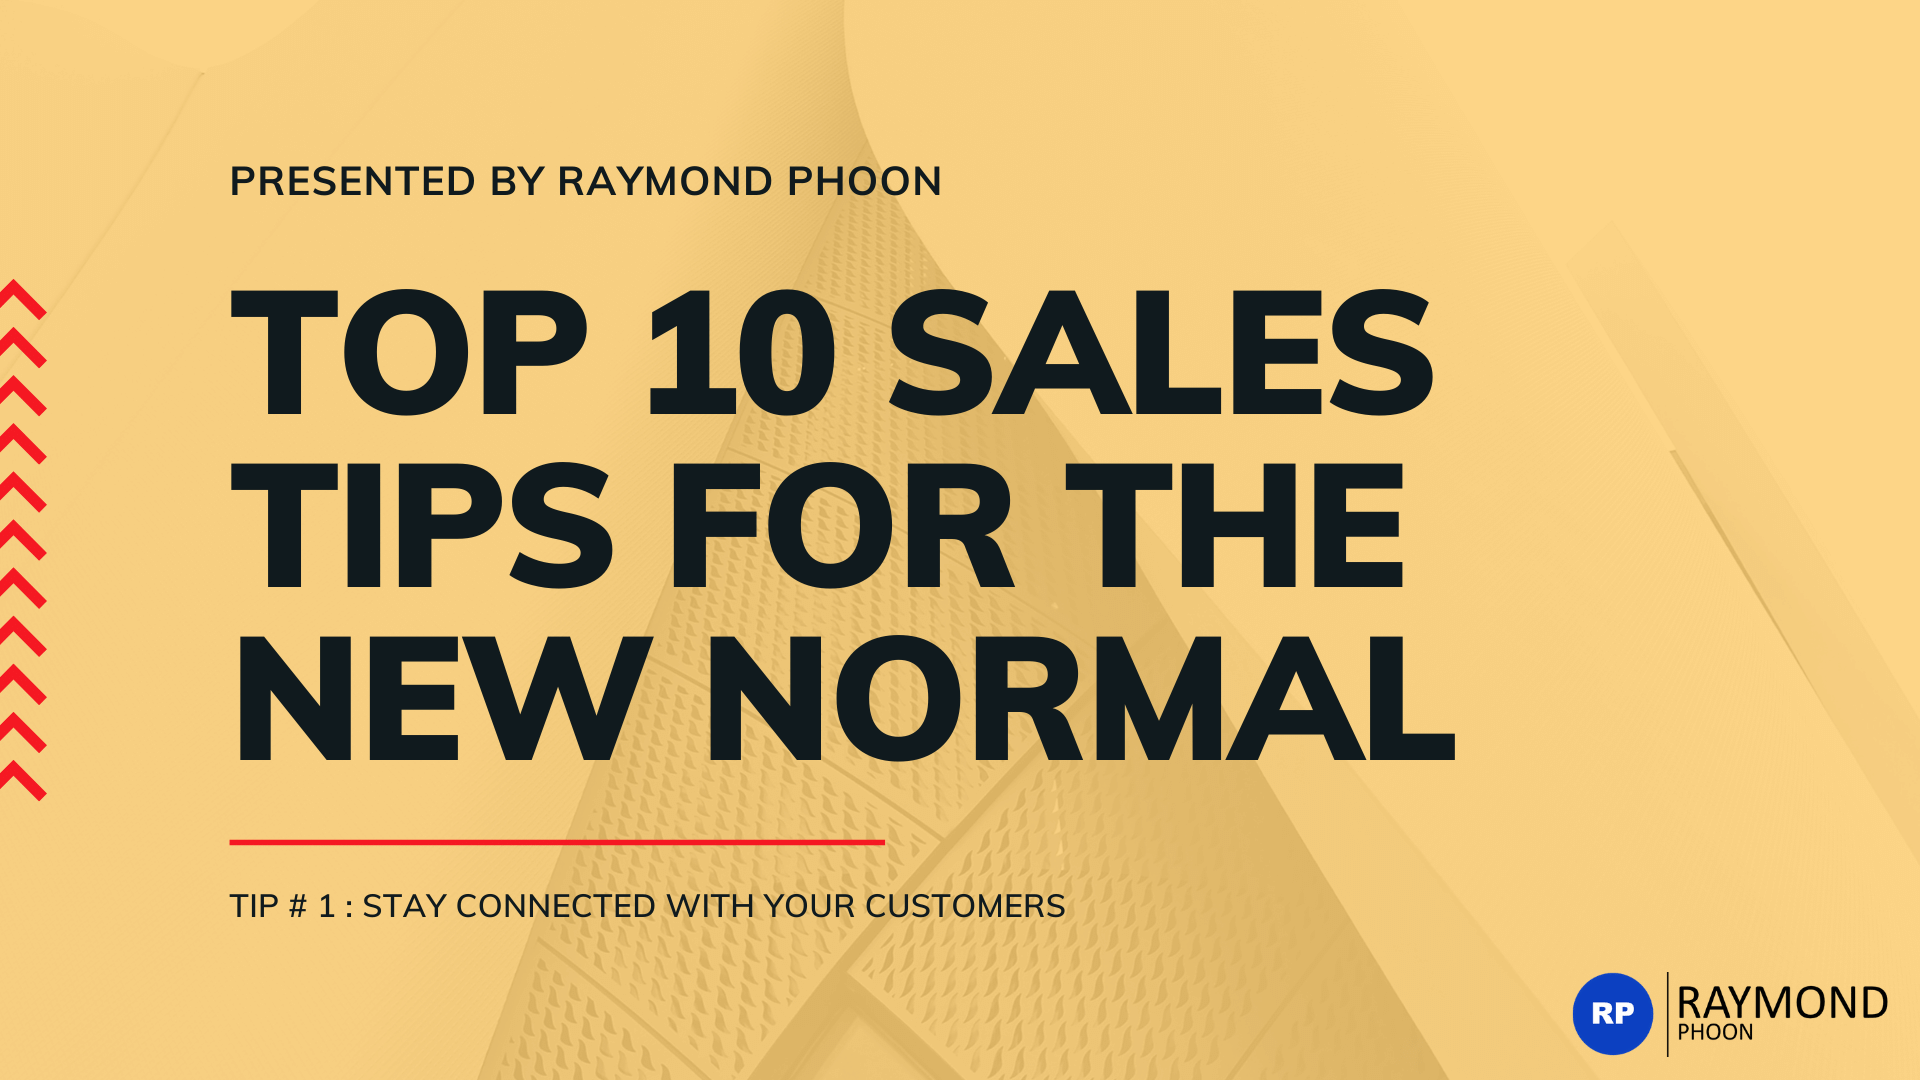 Top 10 sales tips for the new normal